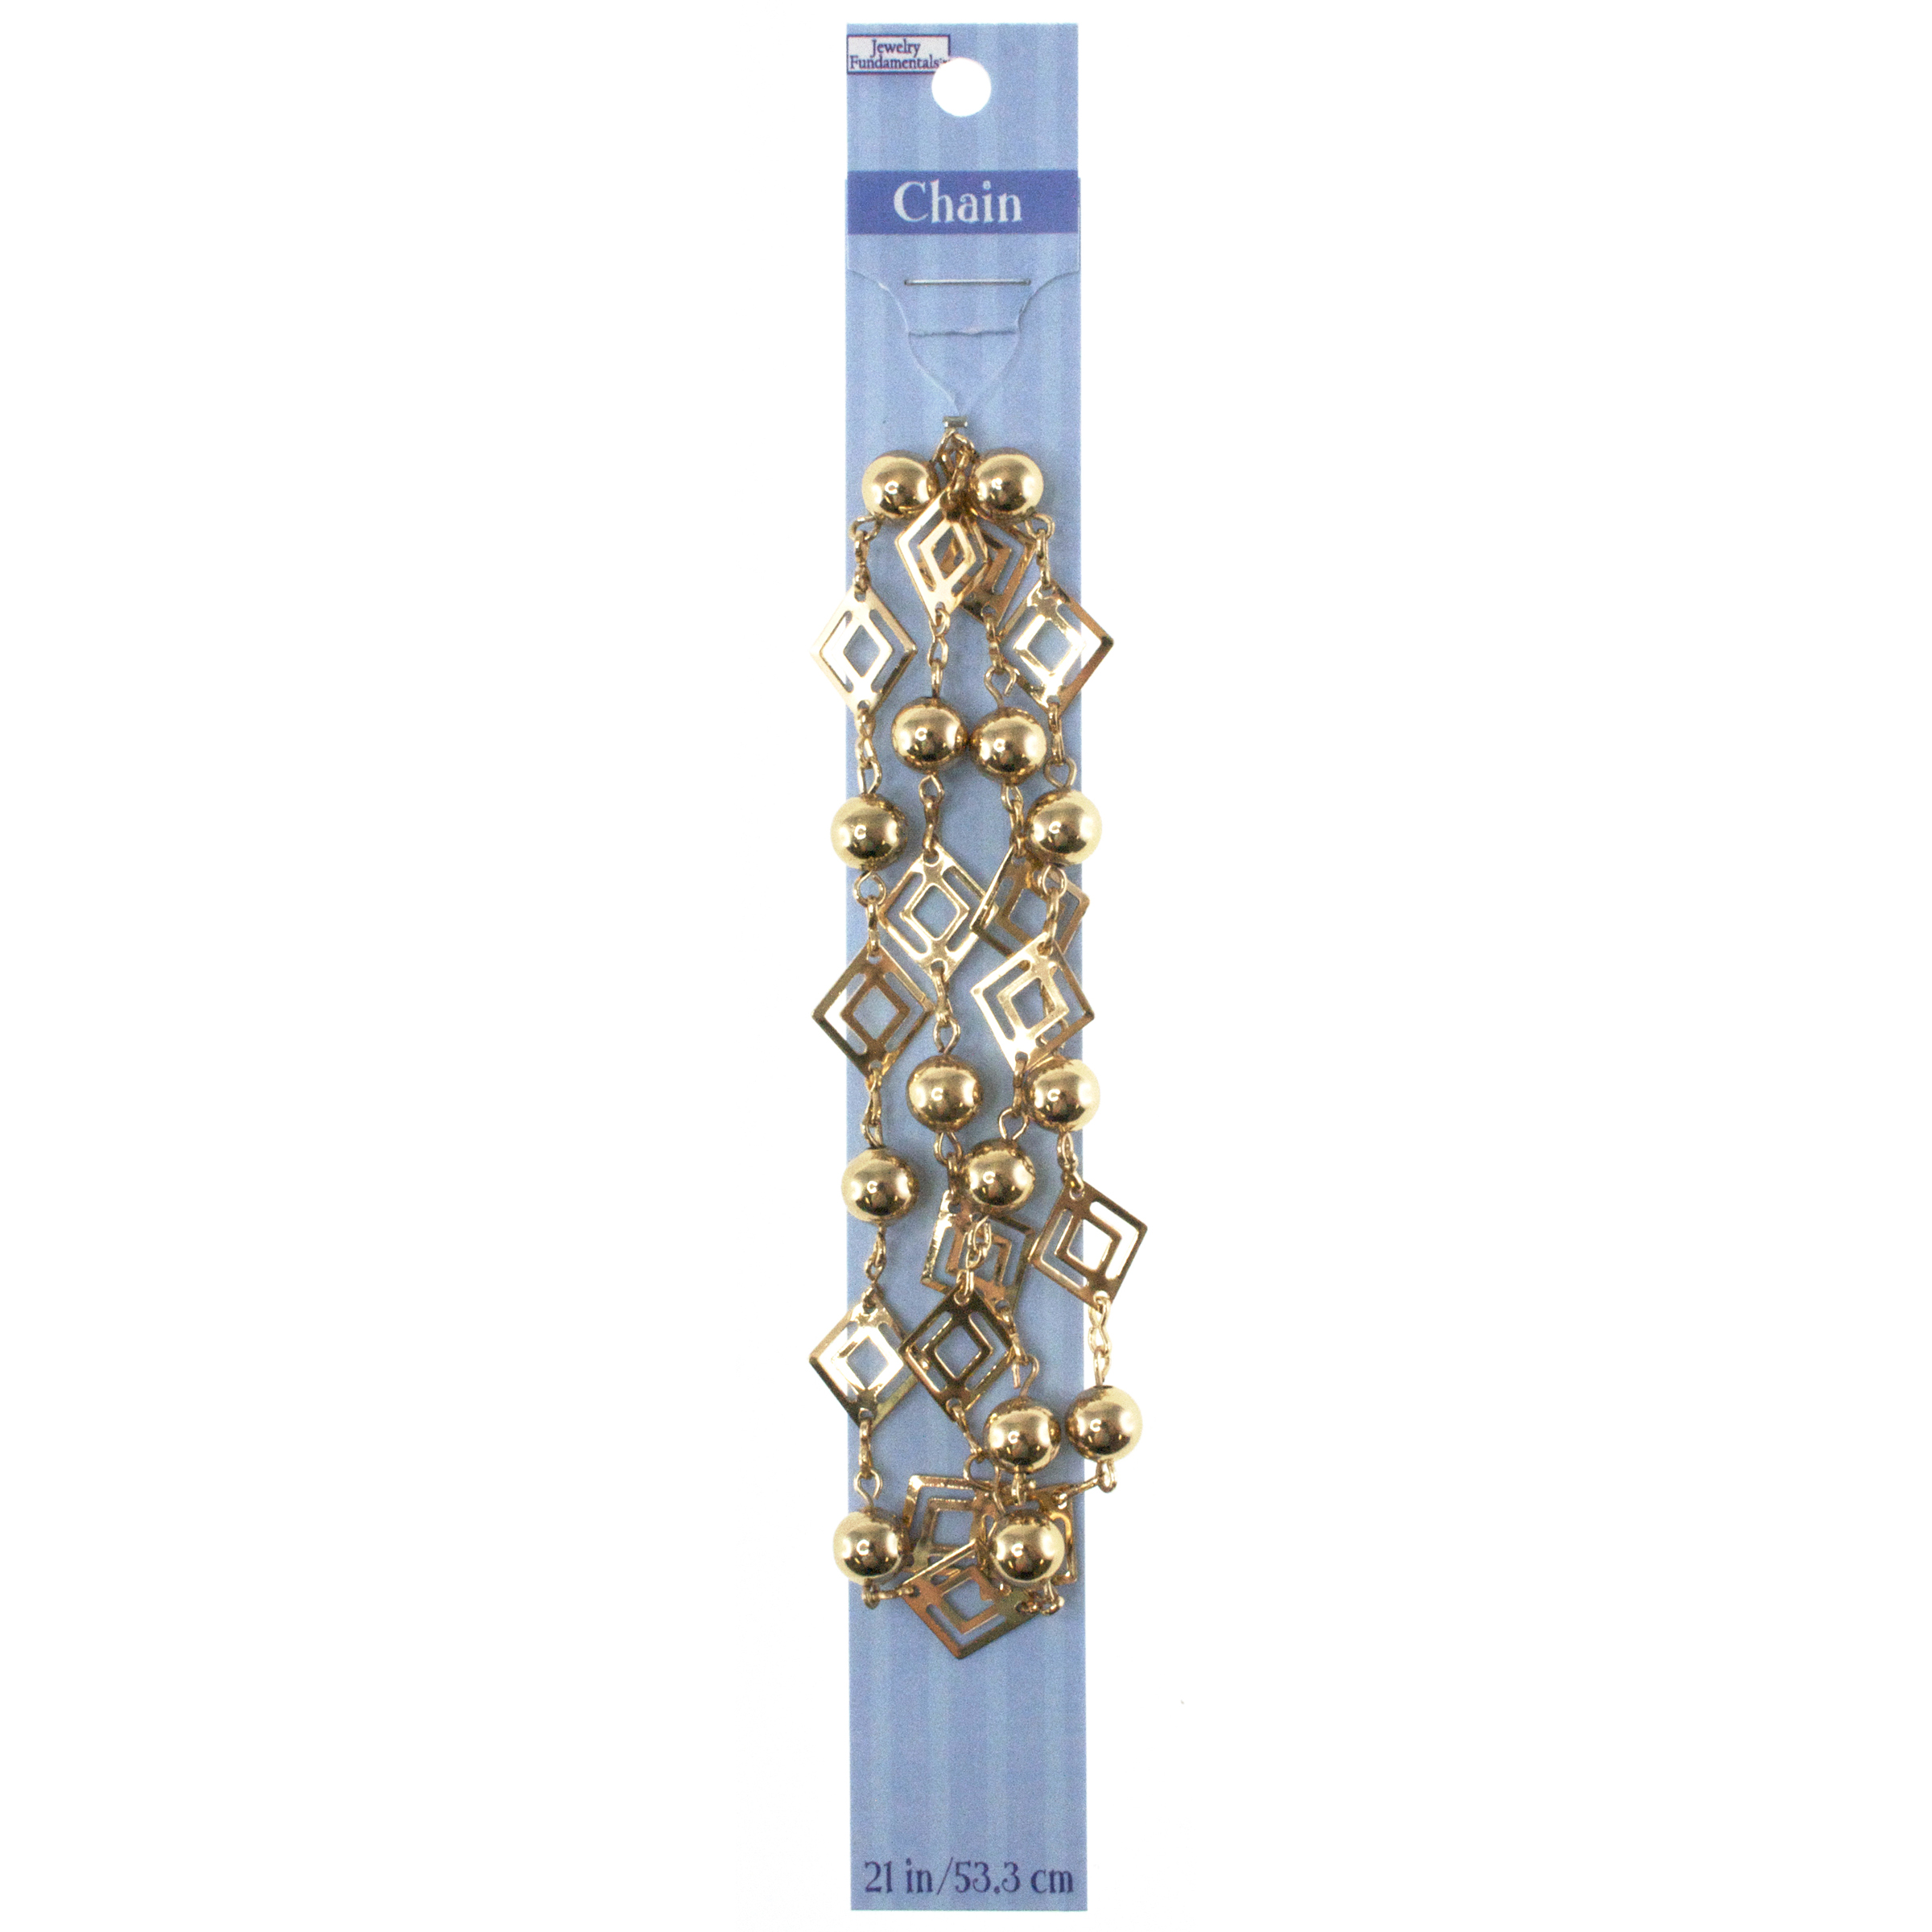 Jewelry Fundamentals 21 in. Chain-Pale Copper Diamond Cutouts